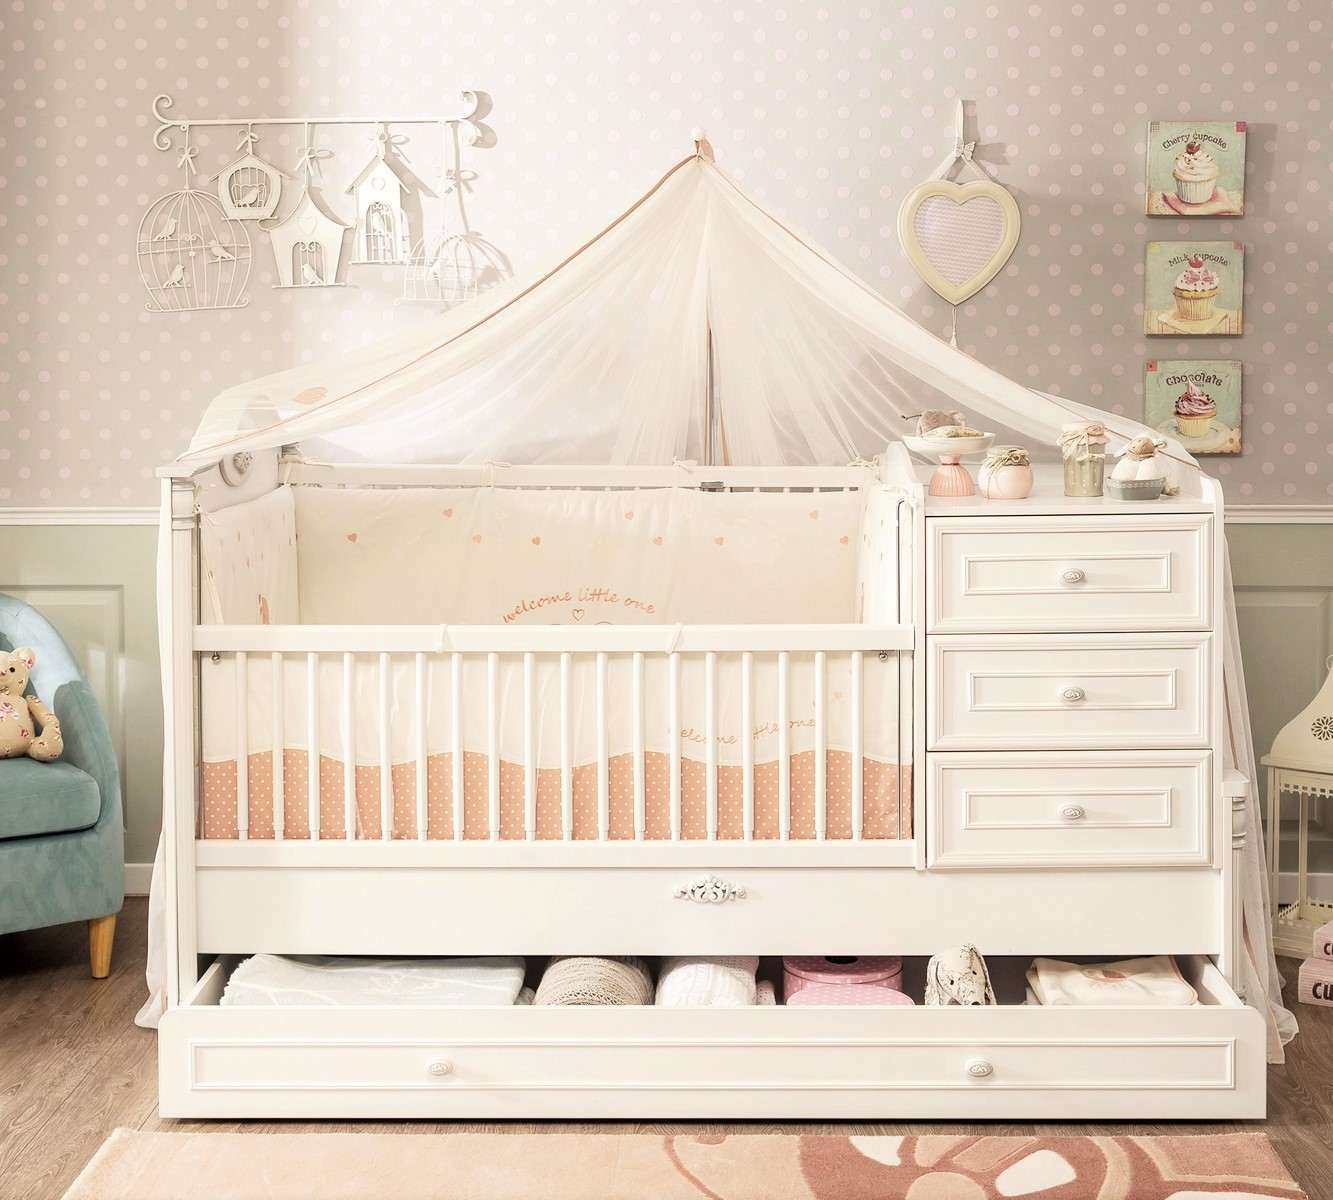 Baby Ledikant Compleet.Romantic Babybed Ledikant Meegroeibed 4 In 1 Specialist In